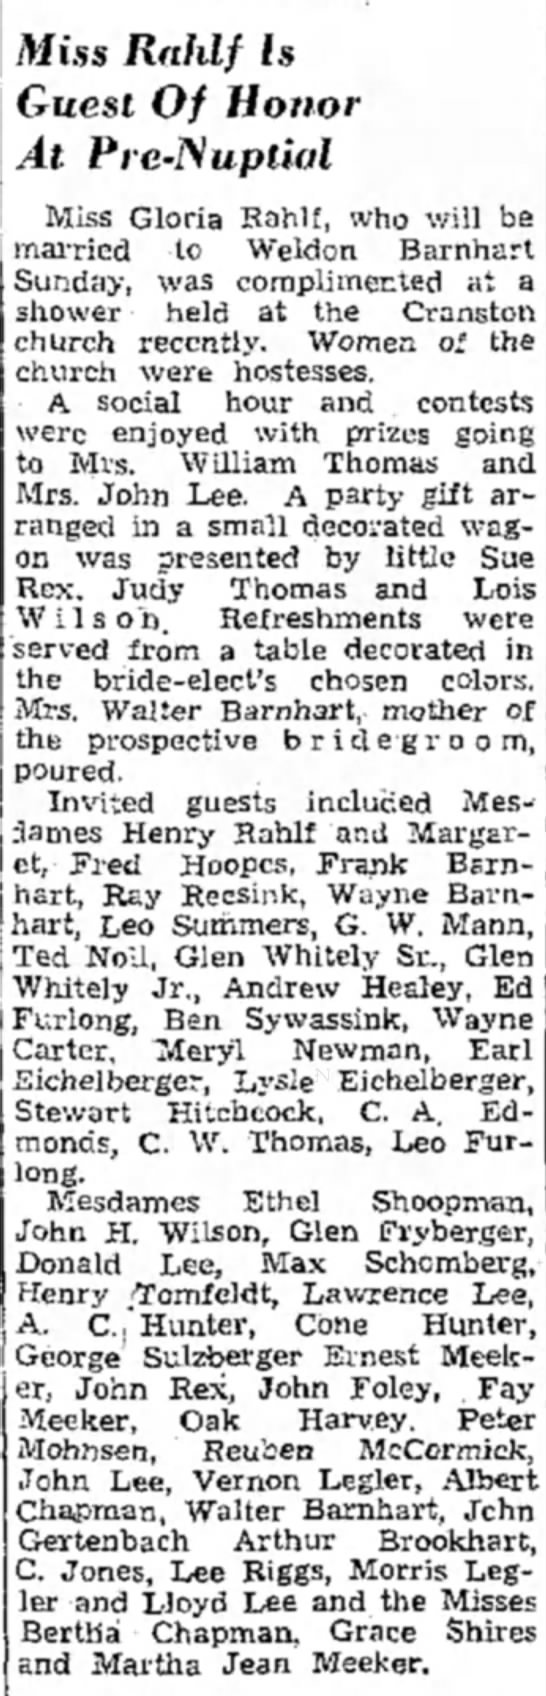 Cranston Church event from Muscatine Journal 5/28/1949 -